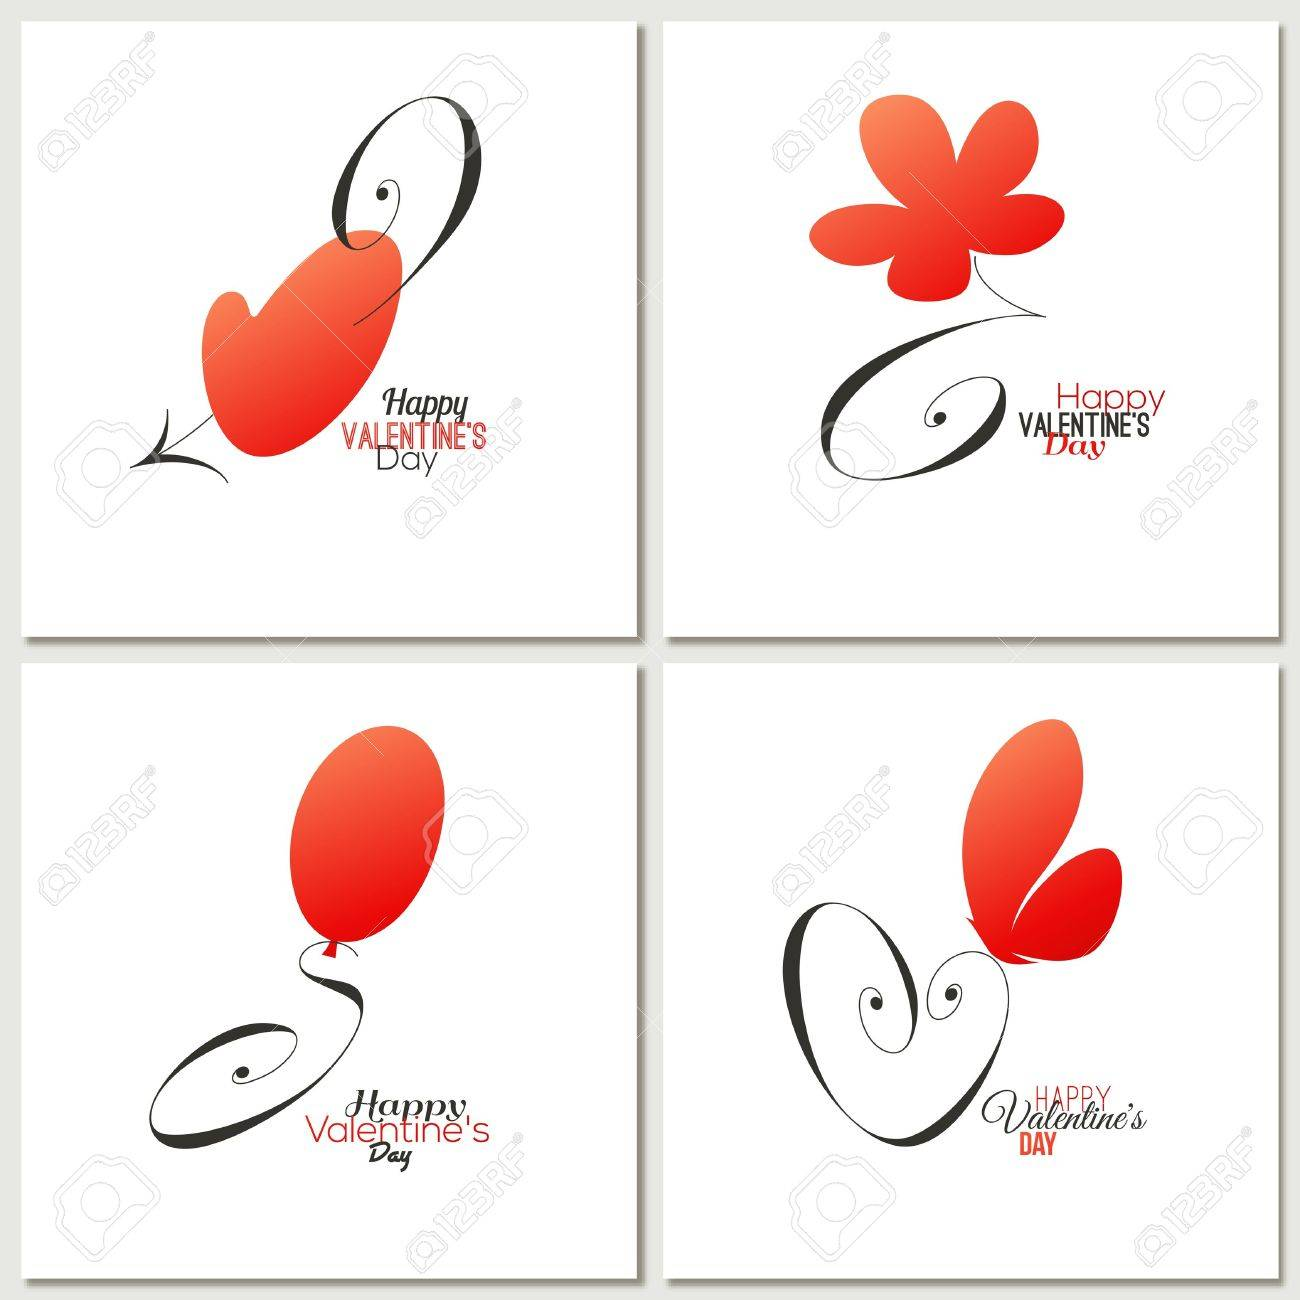 Stylish calligraphic valentine day greeting cards royalty free stylish calligraphic valentine day greeting cards stock vector 17263219 m4hsunfo